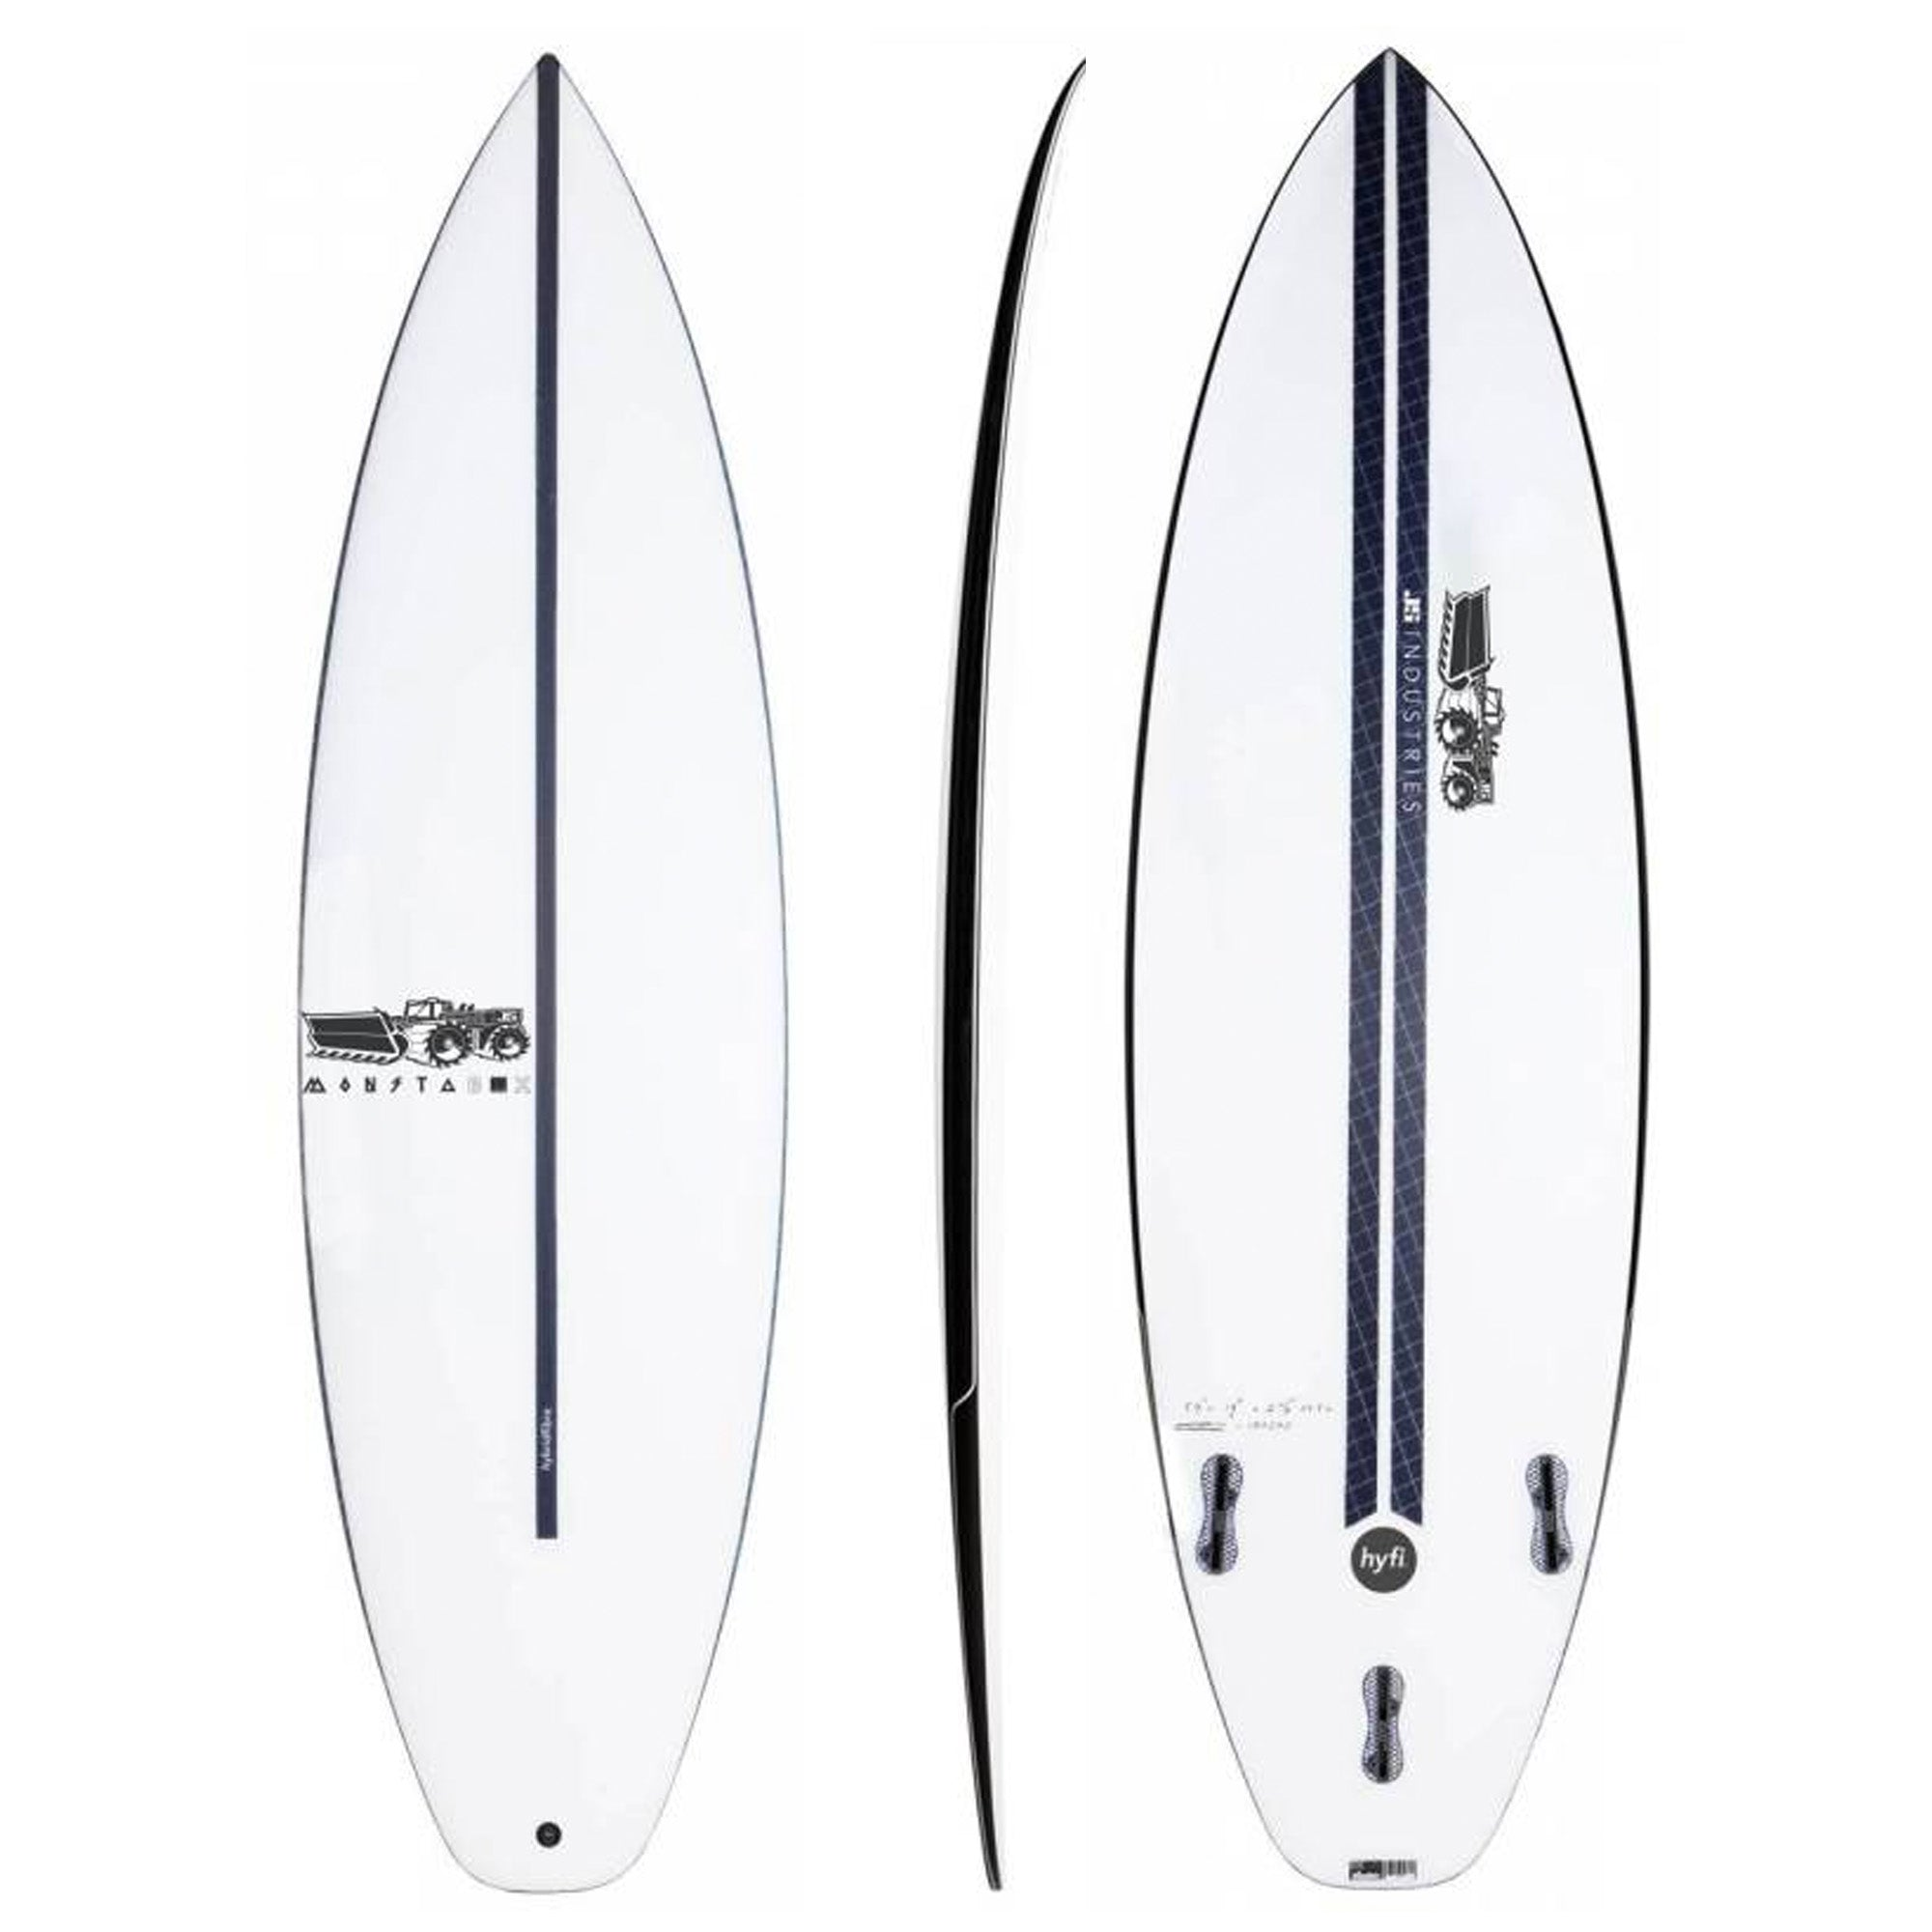 JS Industries Monsta Box 2020 Squash Tail Easy Rider Surfboard - HYFI